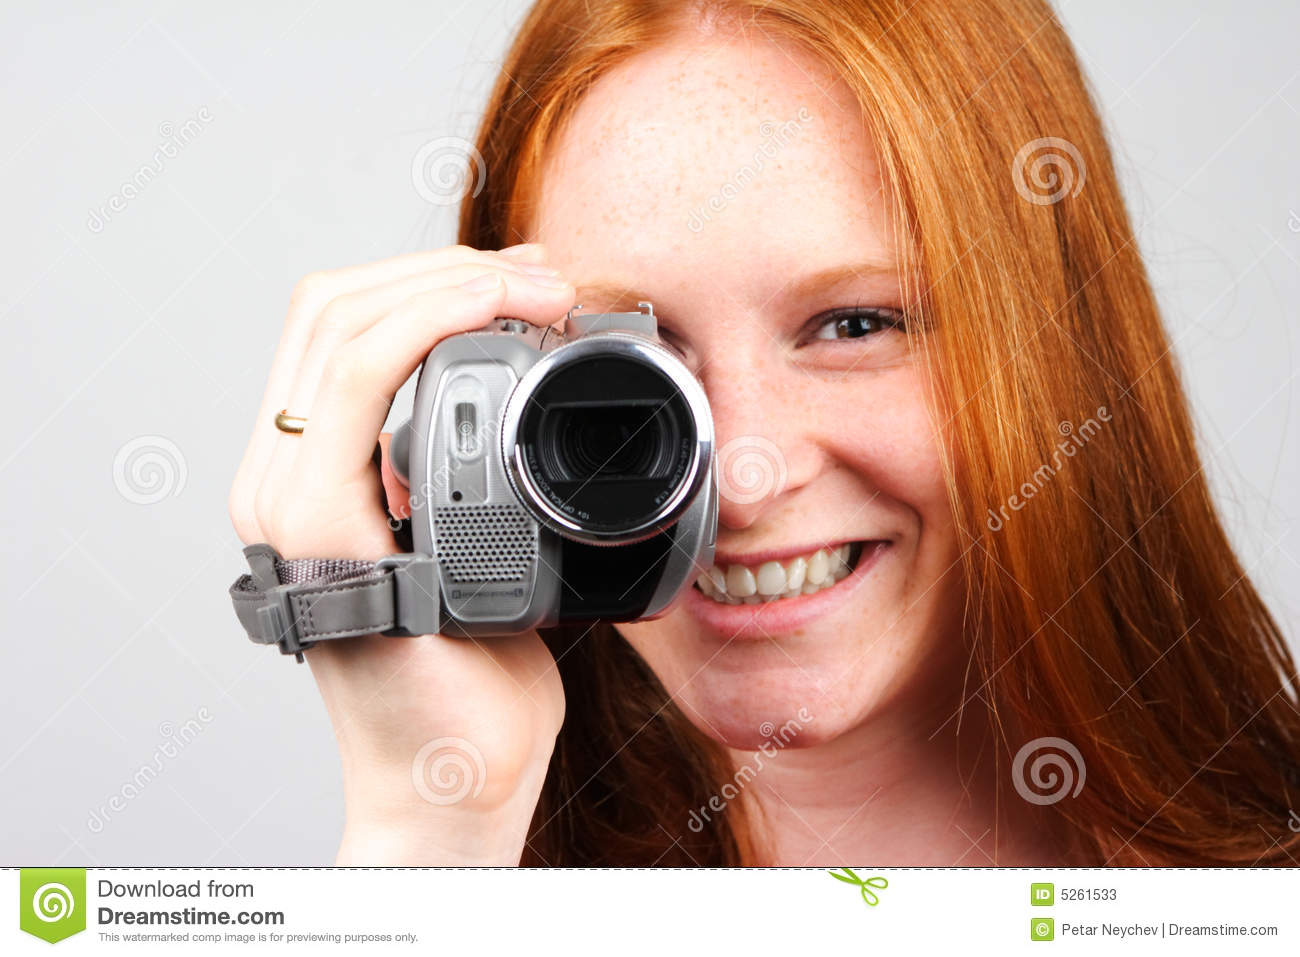 A young woman shooting video with an amateur camera on plain background -  closeup image. 6ee5edfebf